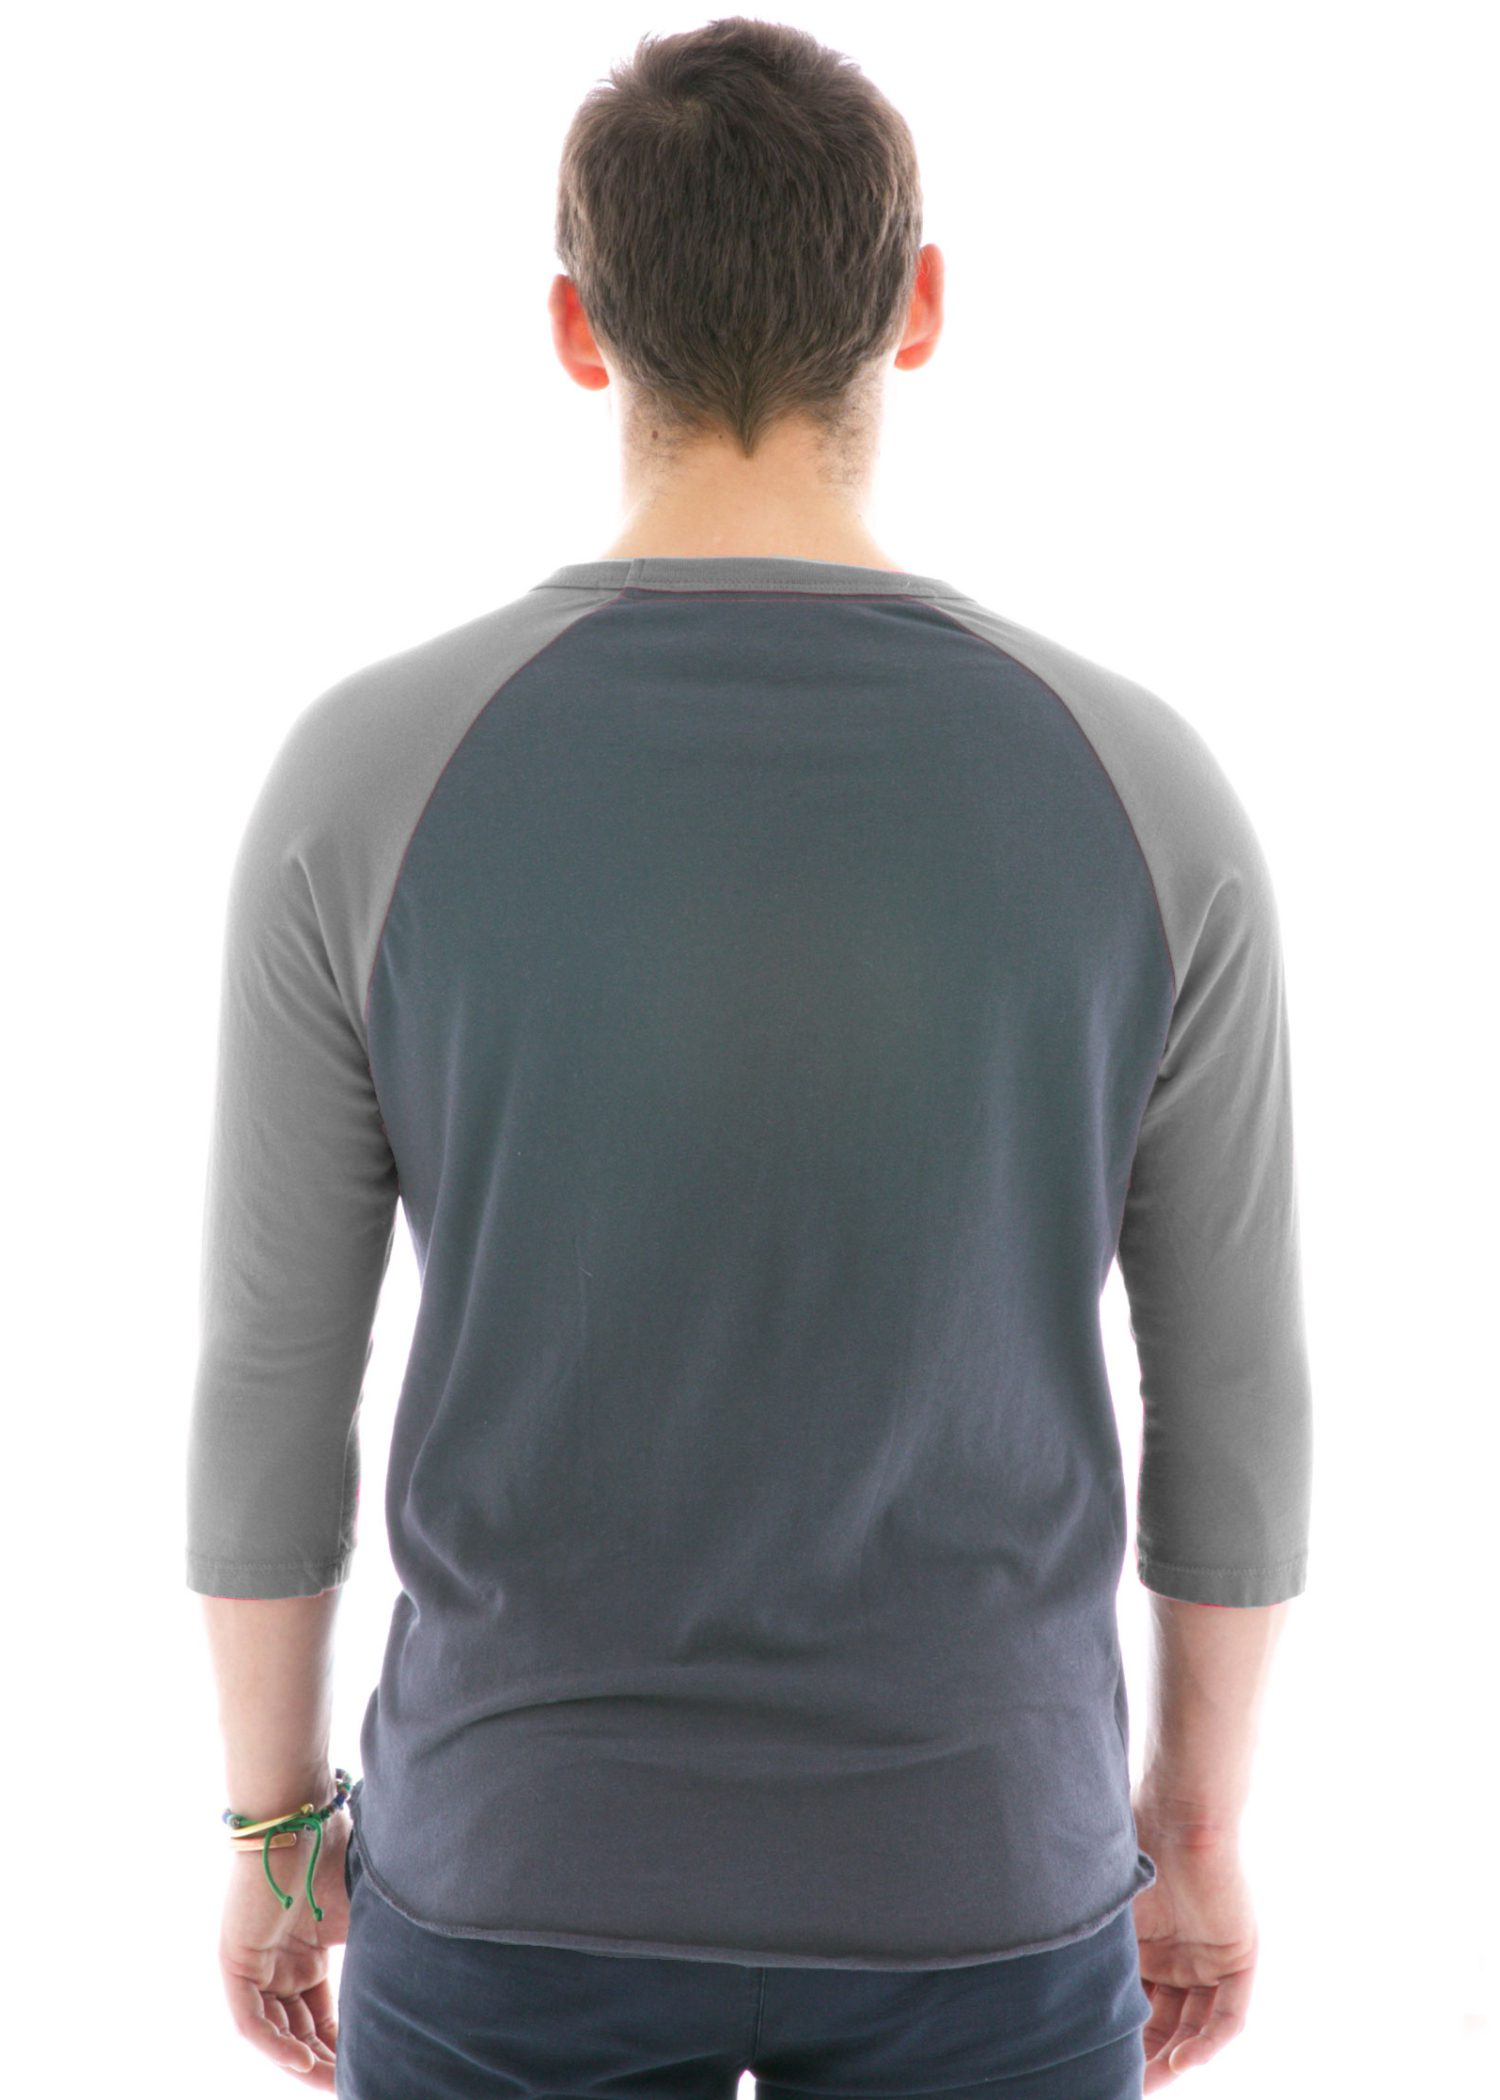 Vintage Baseball Raglan Crew T-Shirt Back View